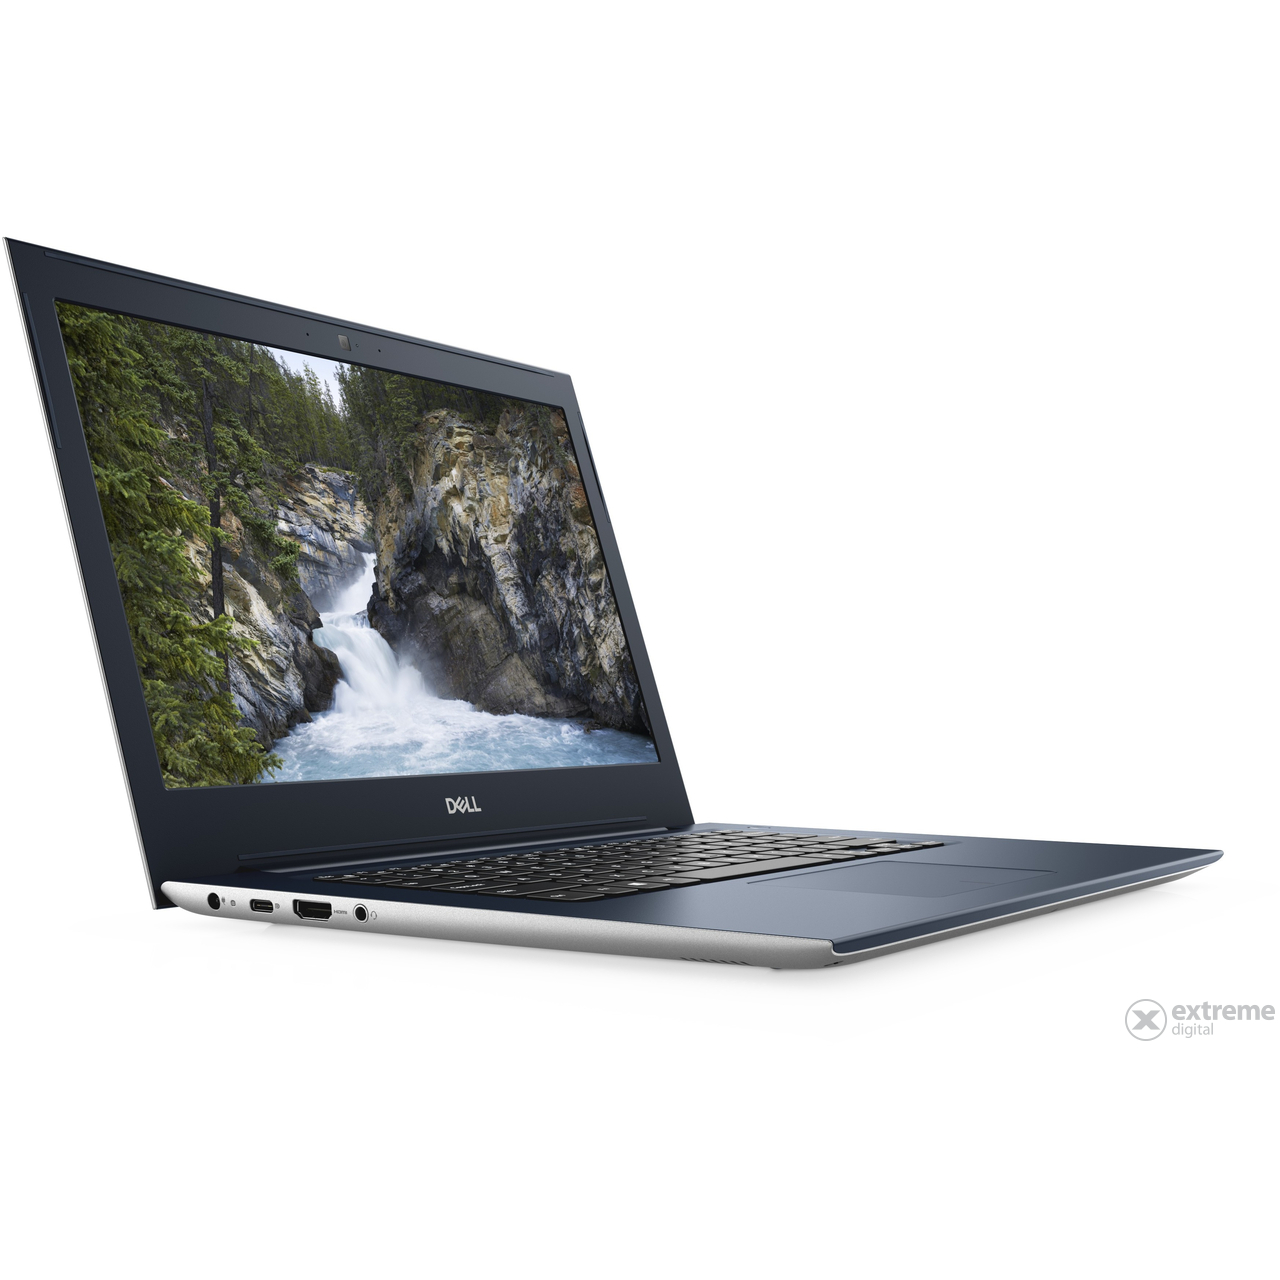 "Dell Vostro 5471 14"" N2204RPVN5471EMEA01_1905 FHD notebook, ezüst +Windows 10 Pro"